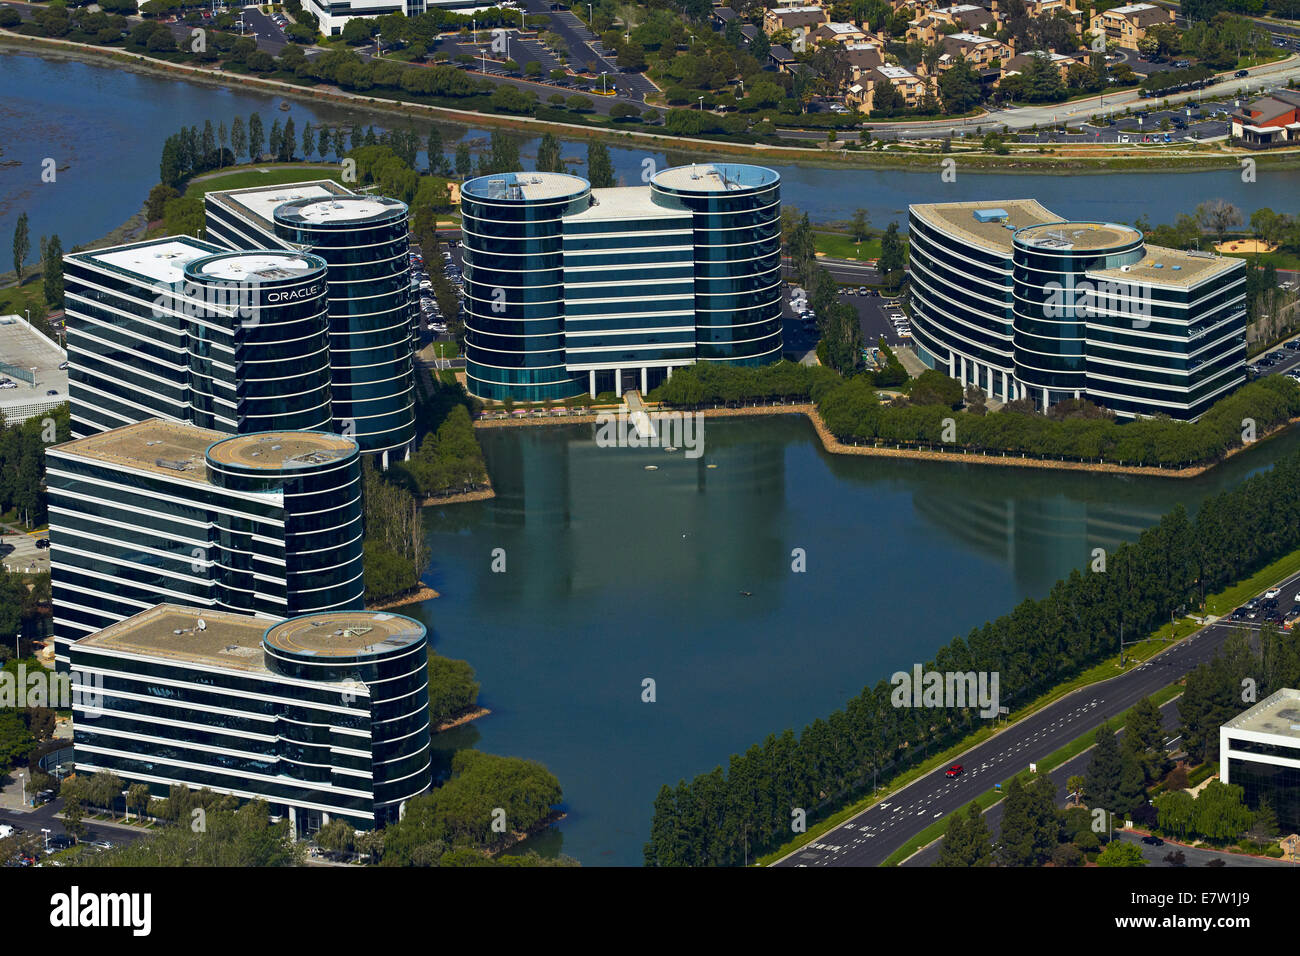 Oracle Corporation headquarters and waterways, Redwood Shores, Redwood City, San Francisco, California, USA - aerial - Stock Image